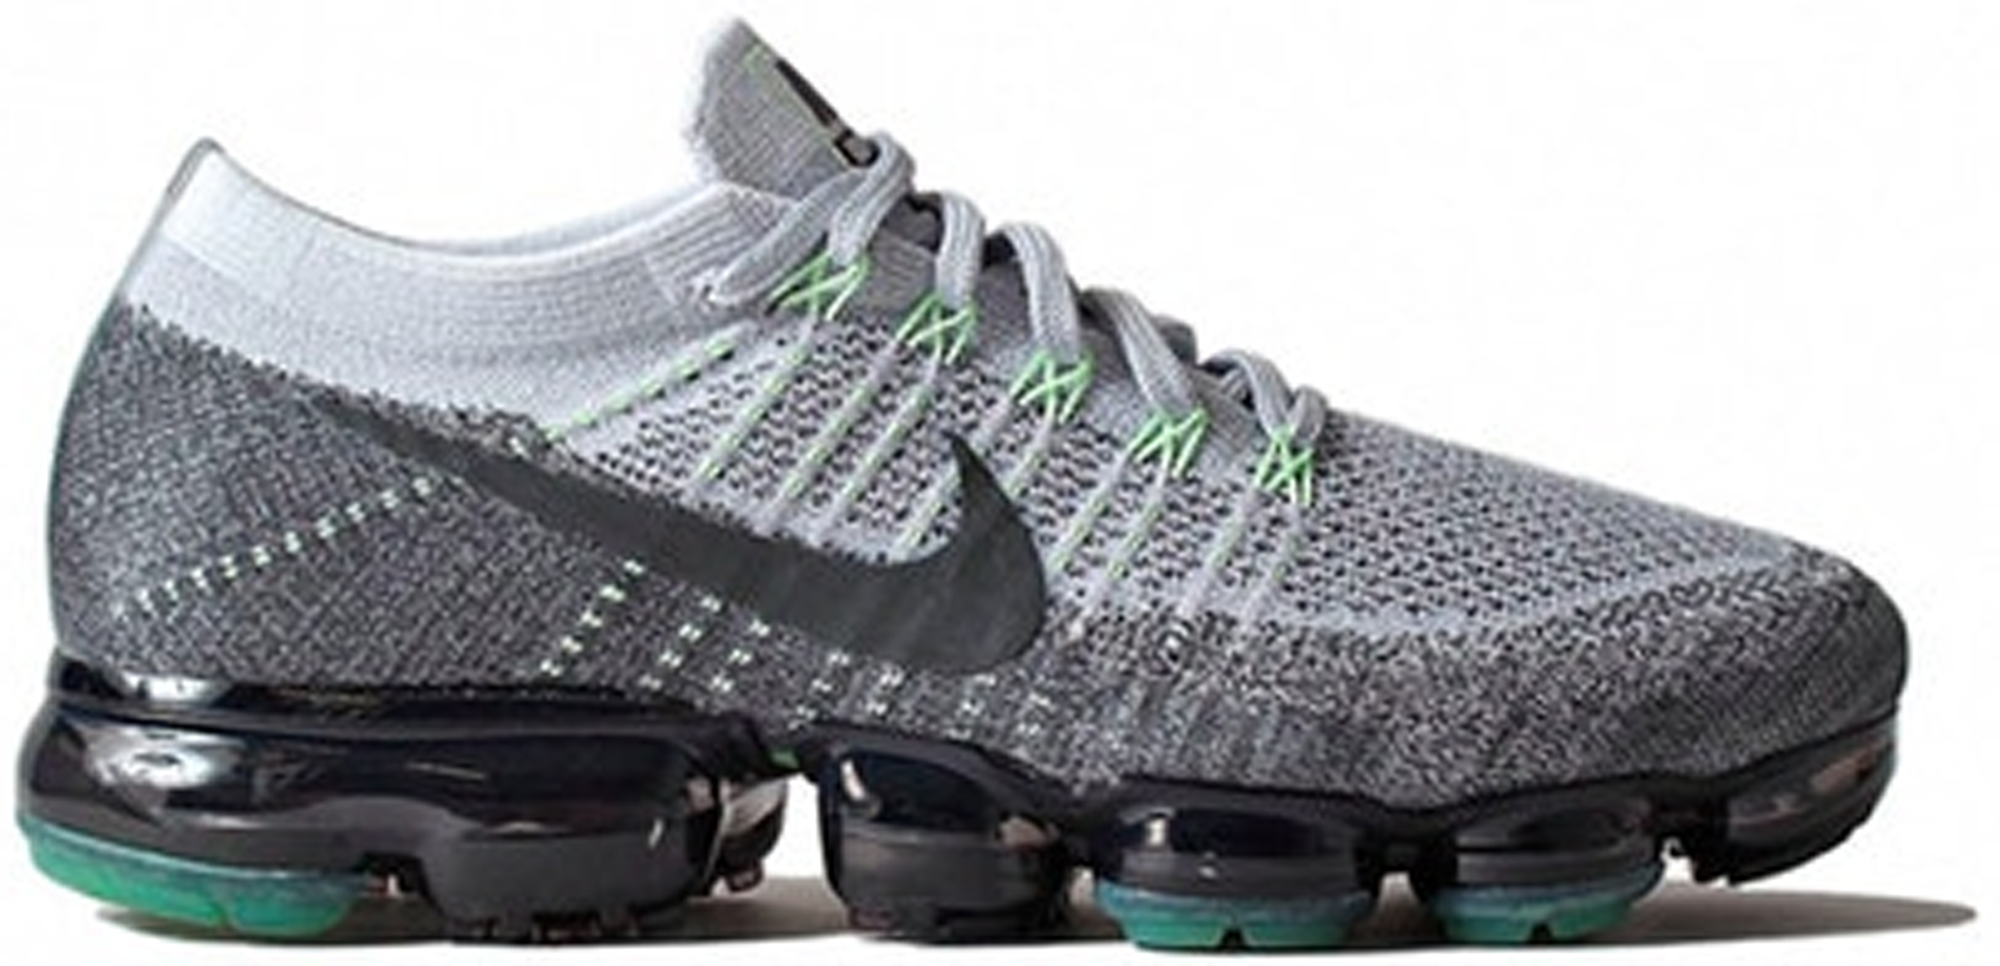 a9afebcbc019 Nike Air Vapormax Heritage Pack diversys.co.uk